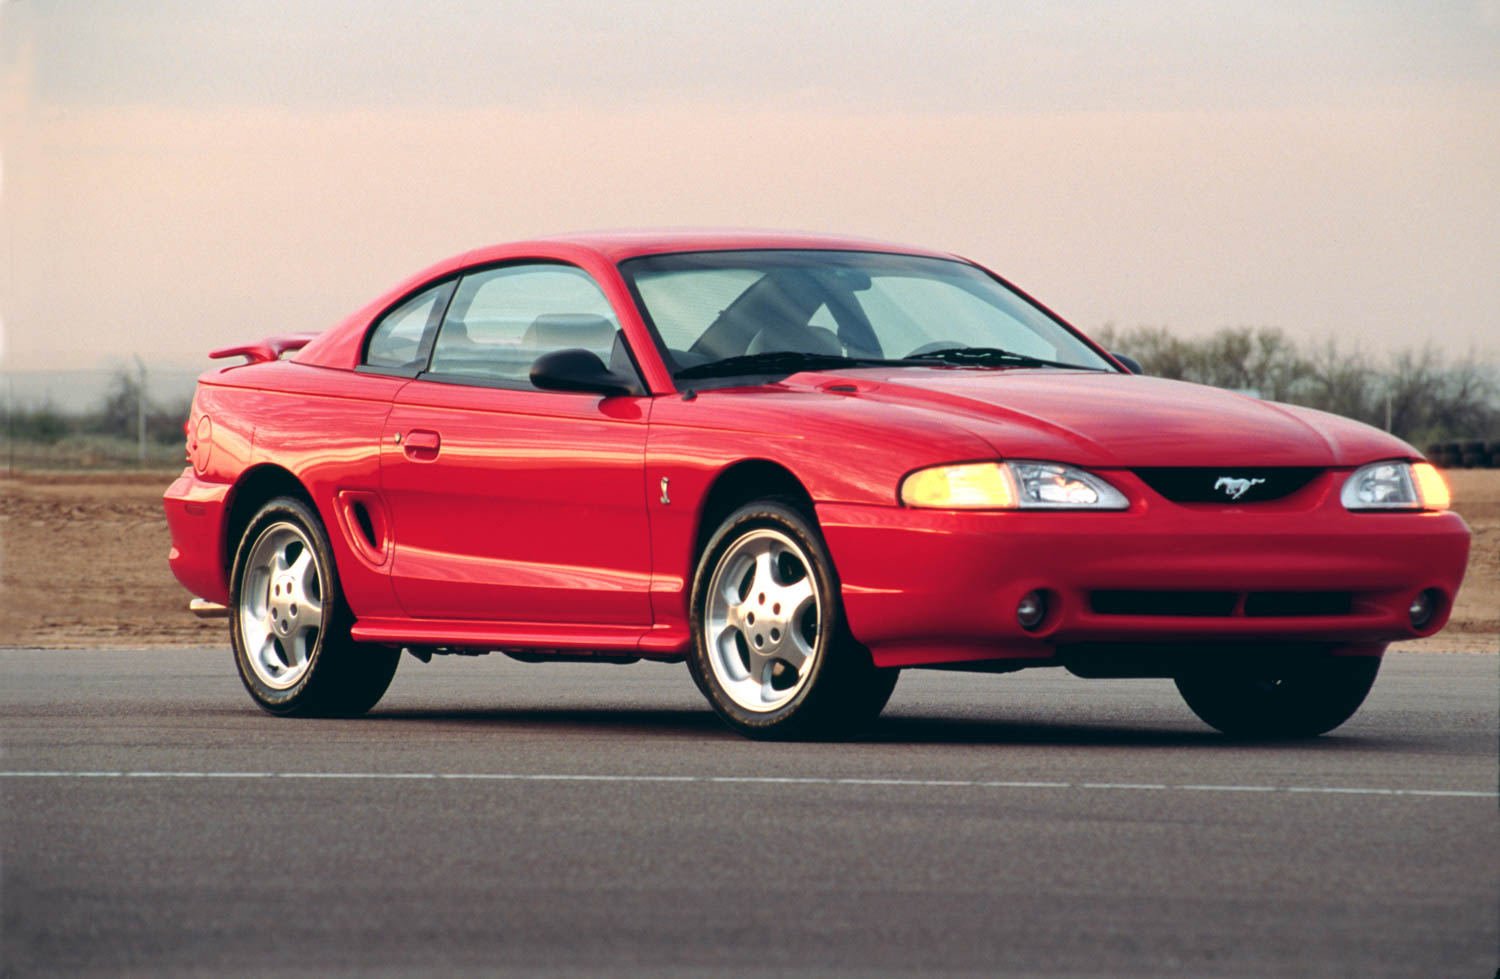 1994 Ford Mustang Cobra coupe